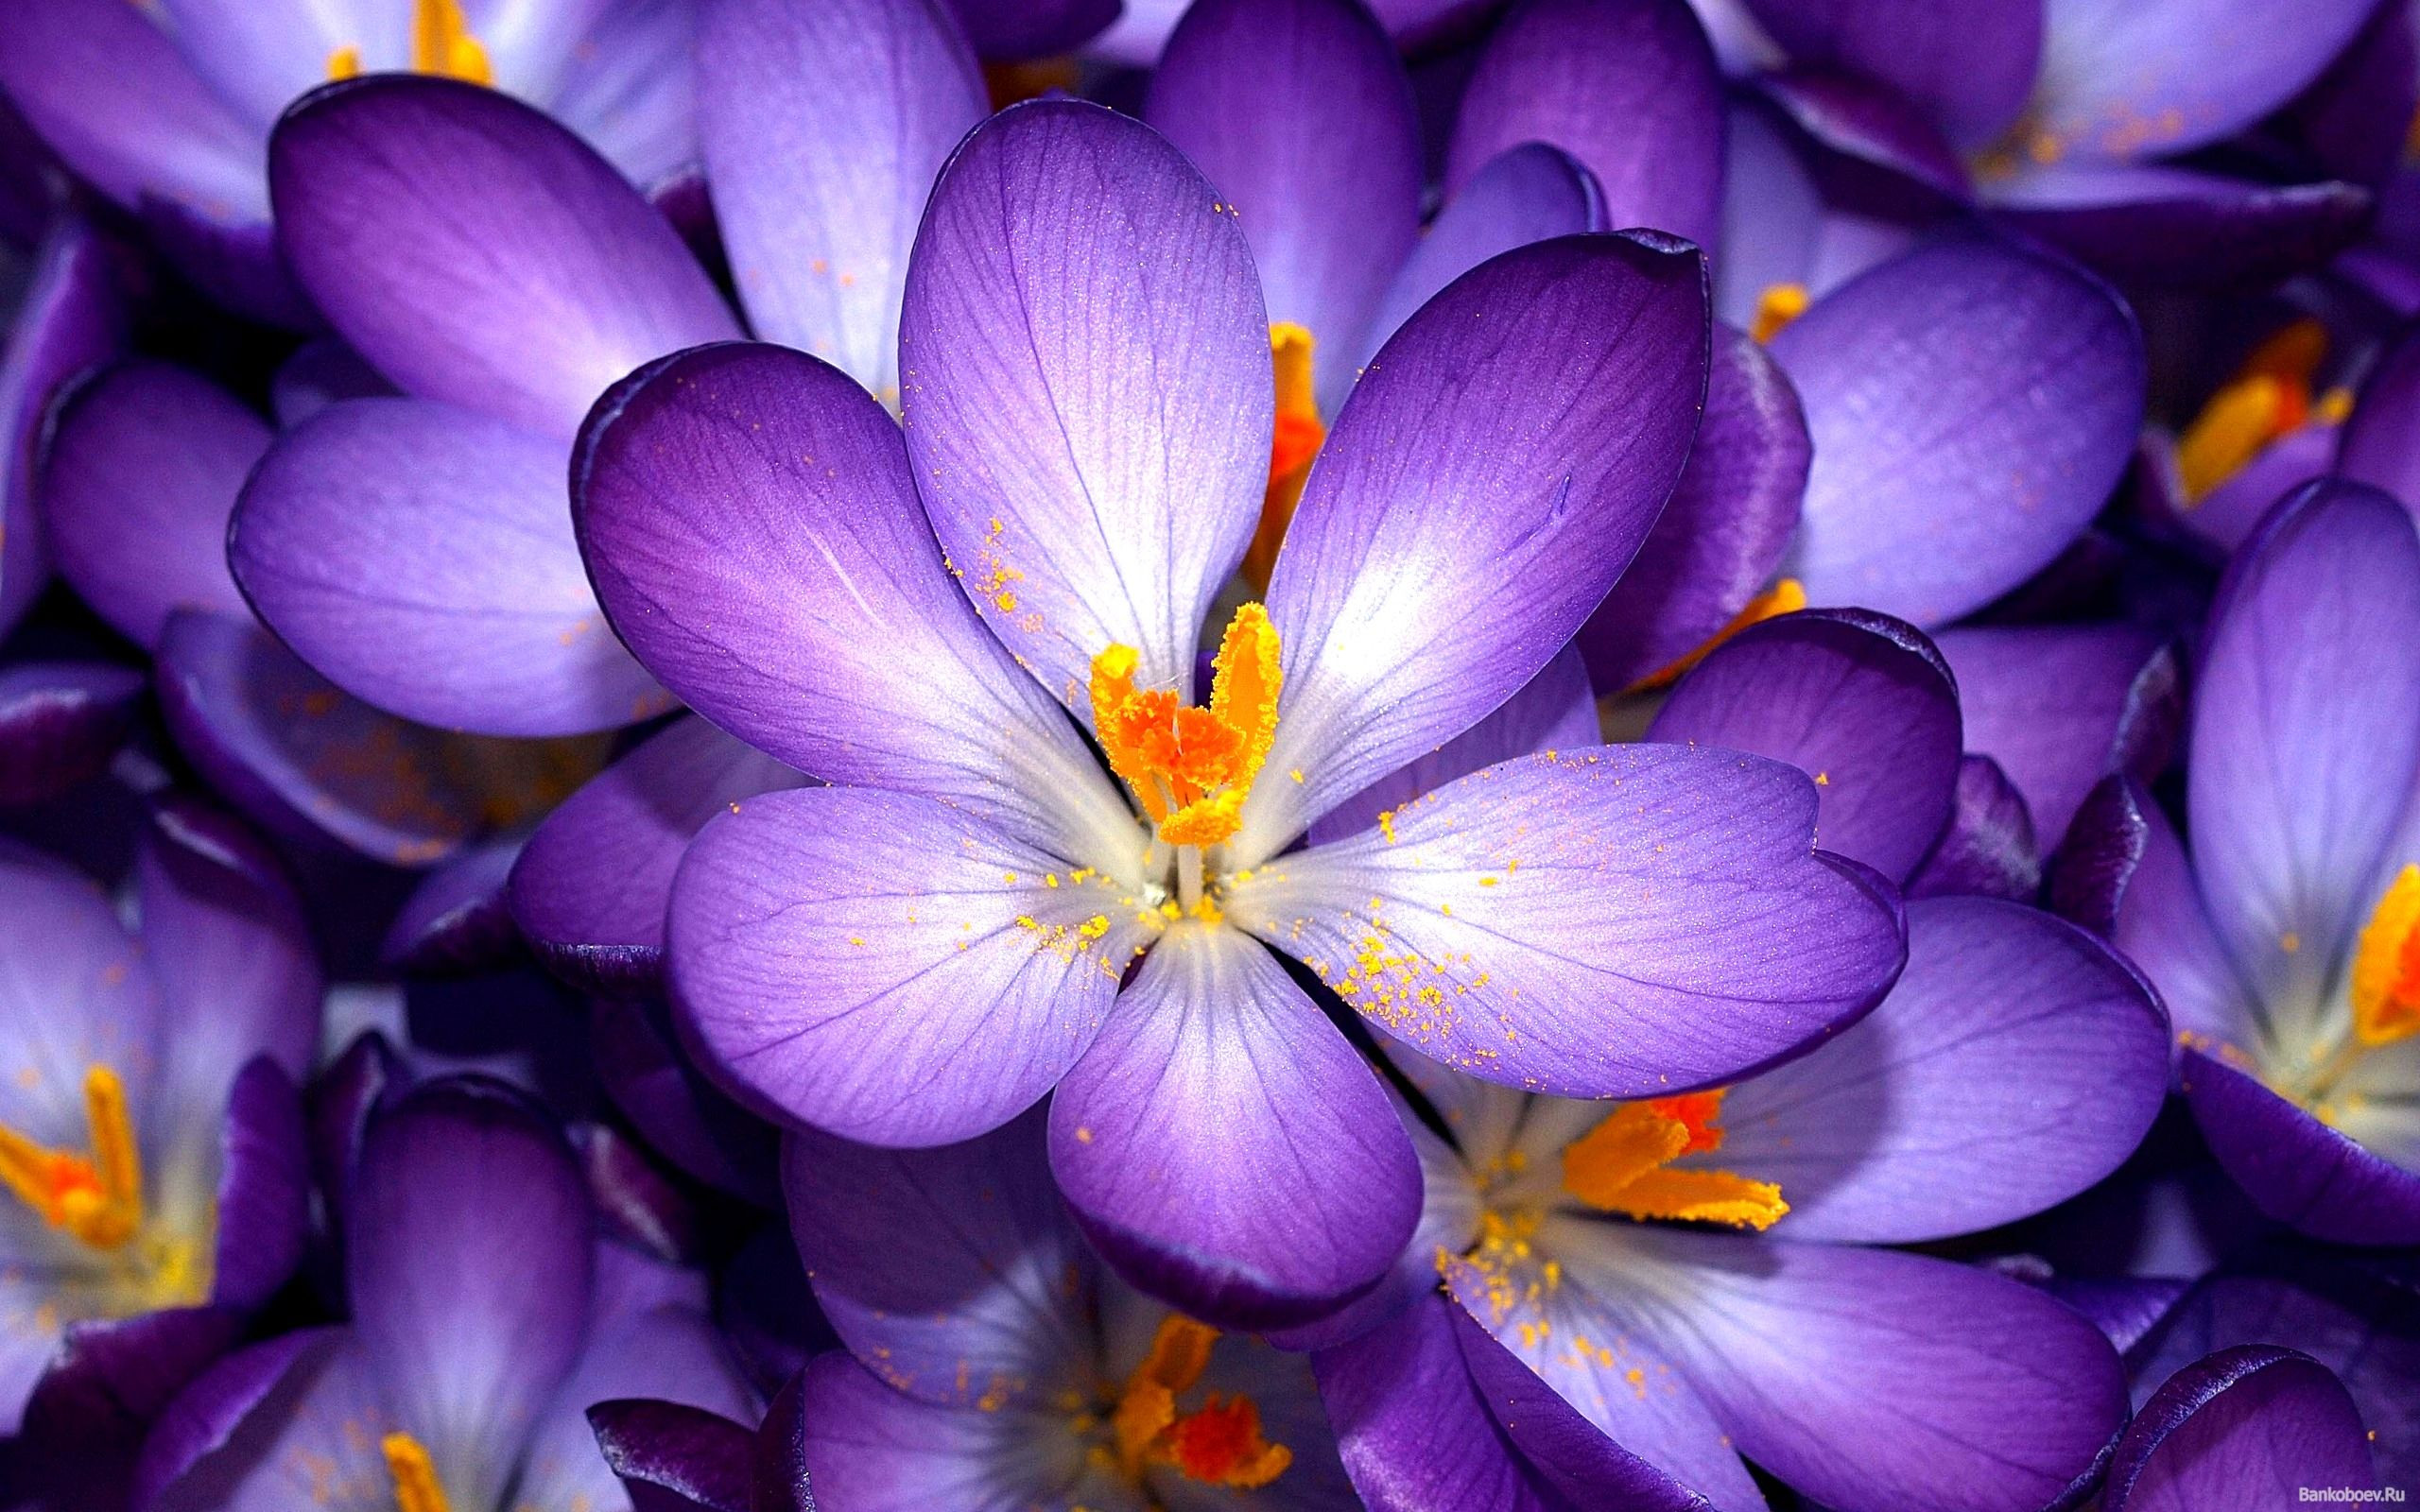 I d love to have a tattoo of violets in memory of my grandmothers